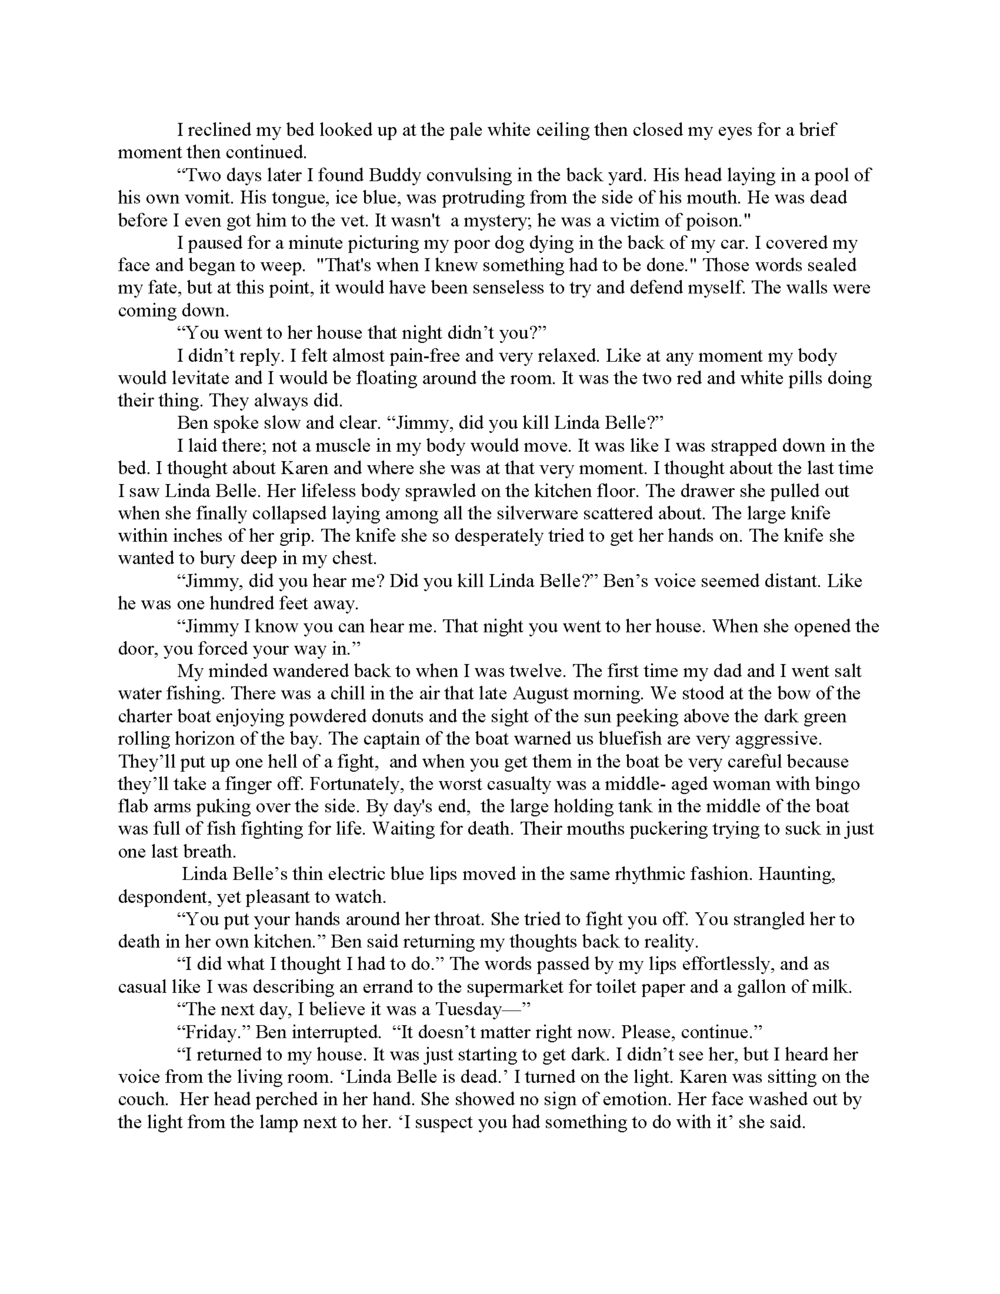 102-Second Prayer Full Story_Page_14.png